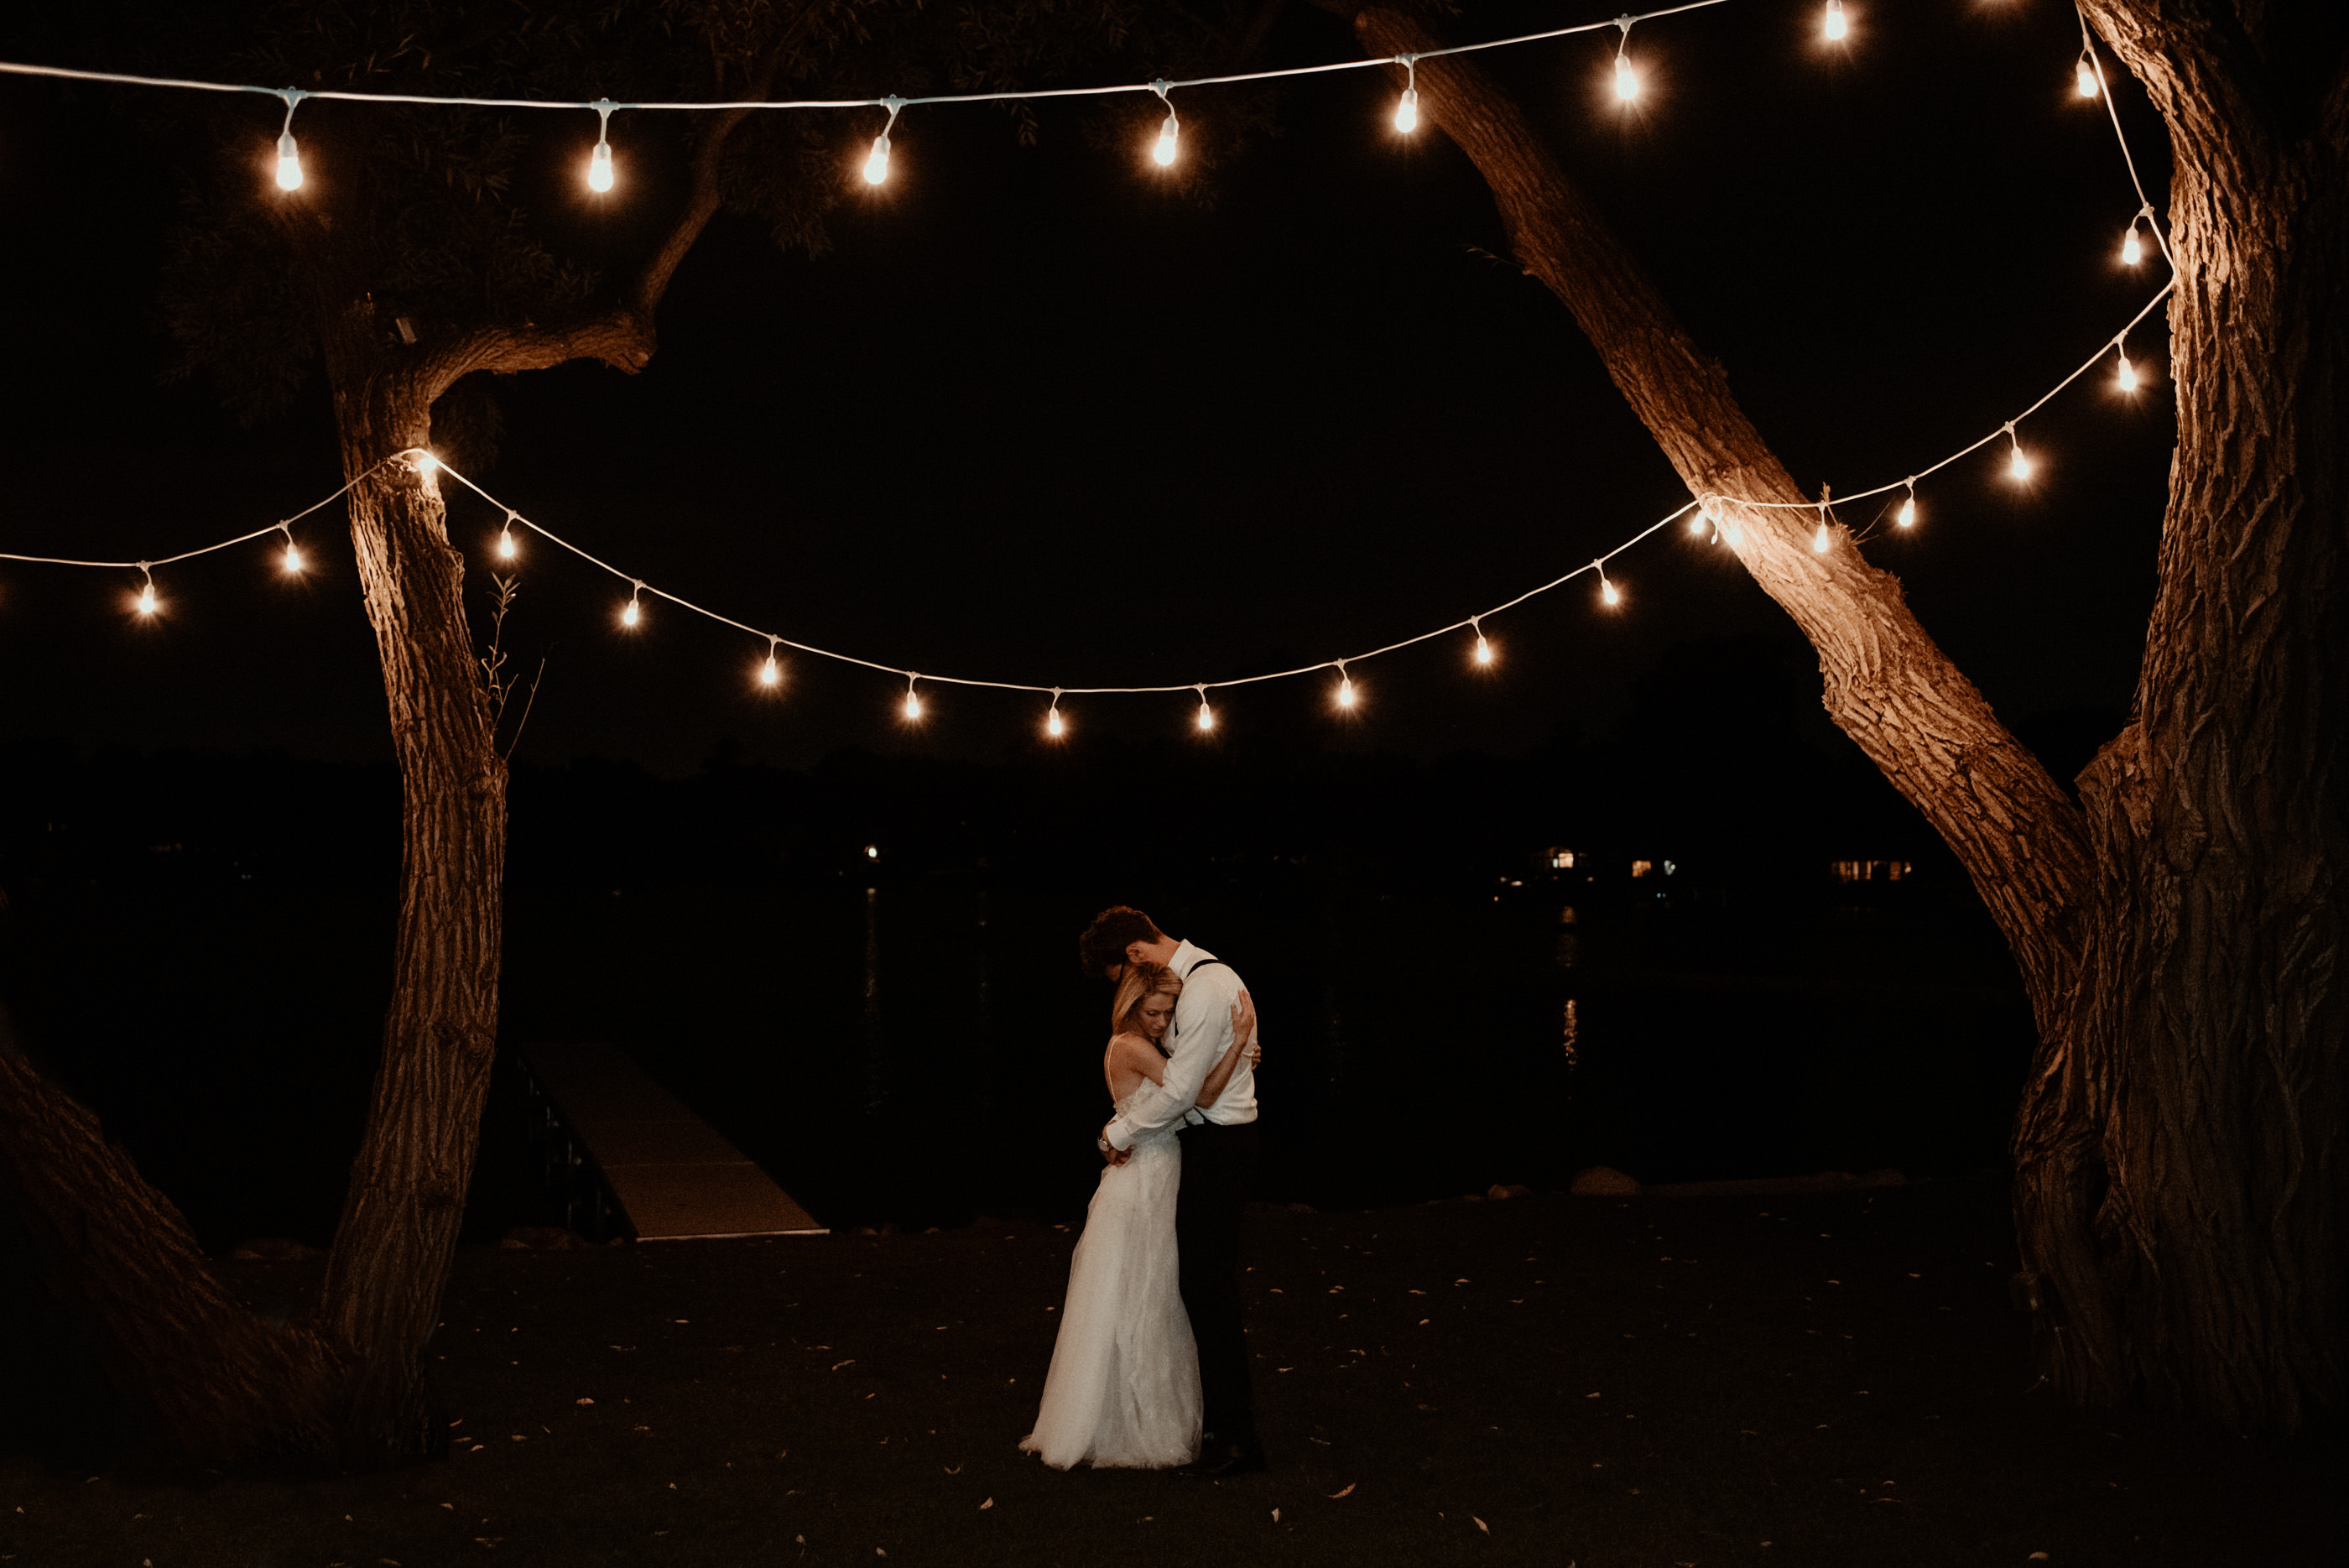 Bride and groom dancing at night under string lights